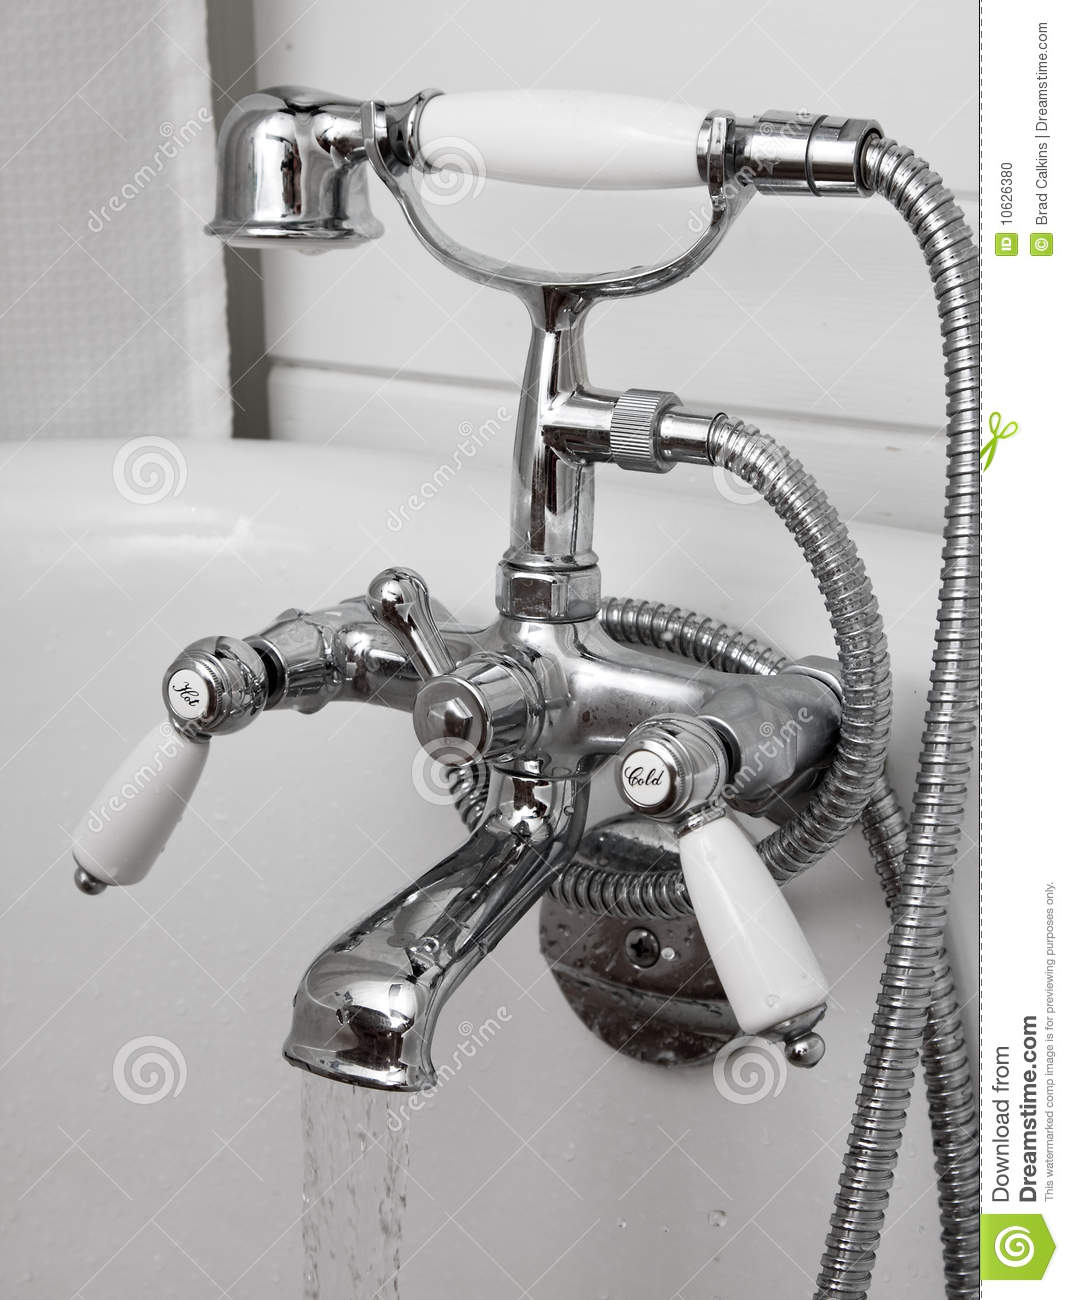 Bathtub Taps Stock Photo Image 10626380